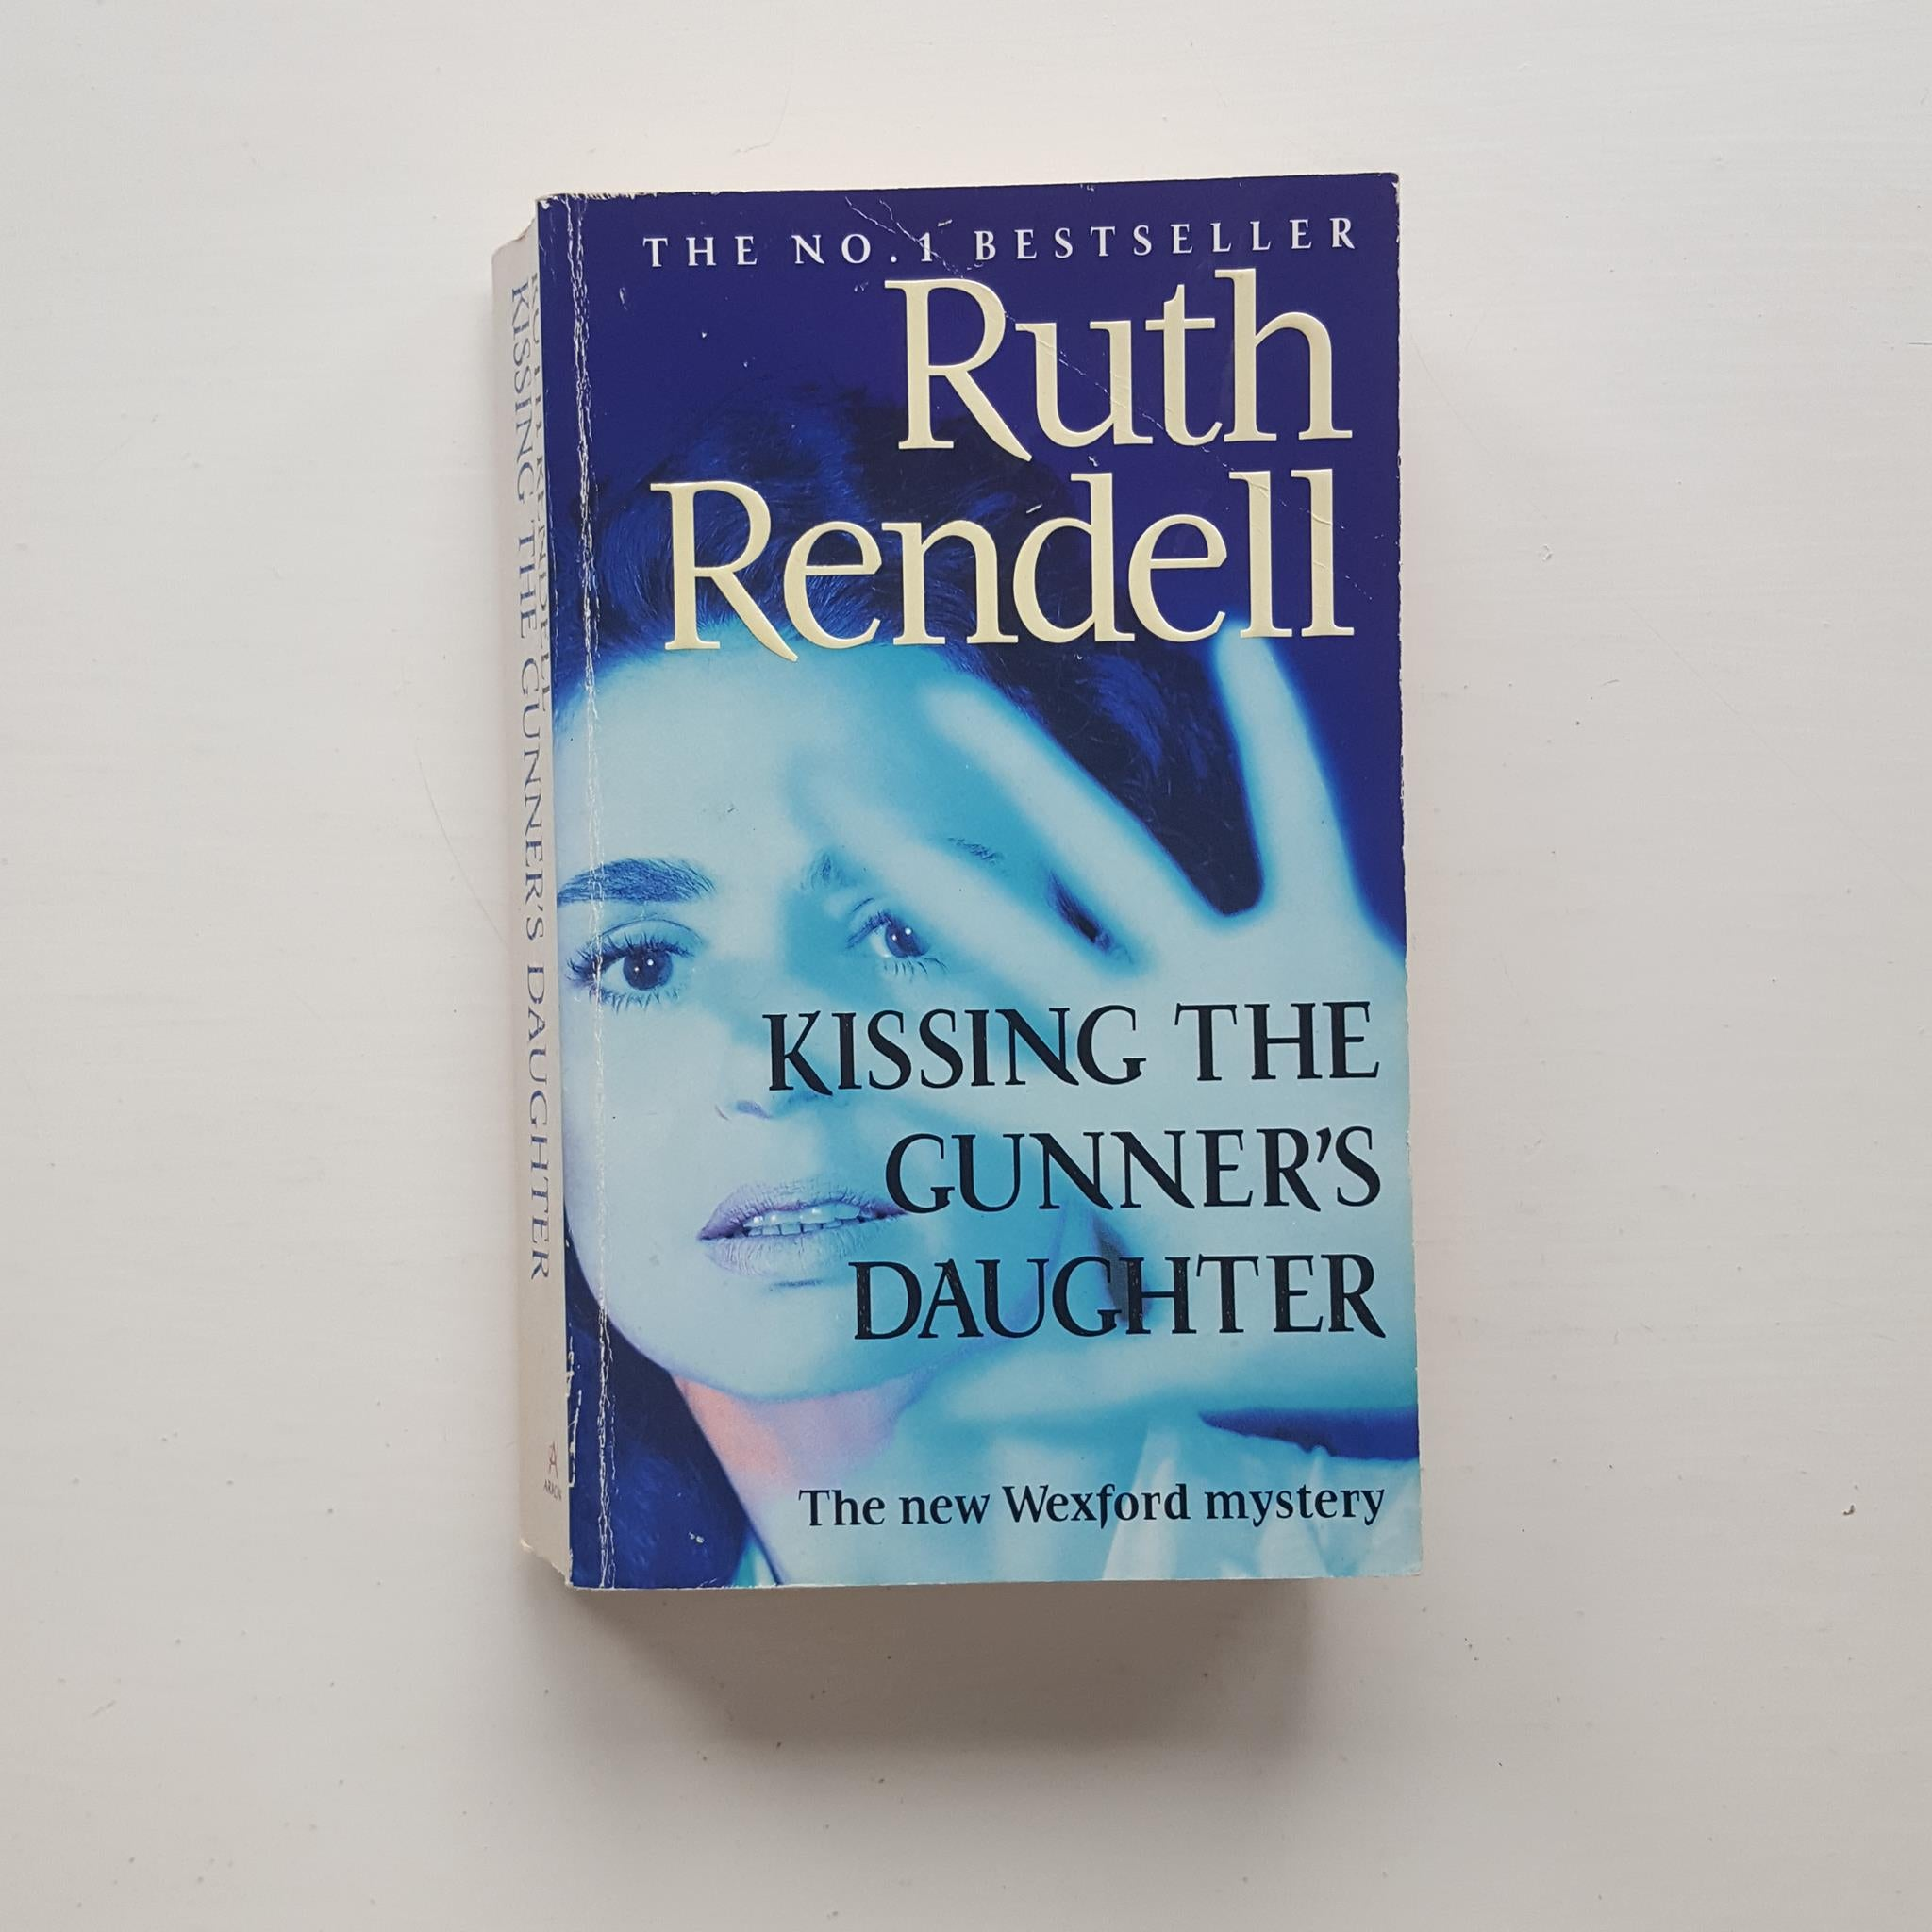 Kissing the Gunner's Daughter by Ruth Rendell